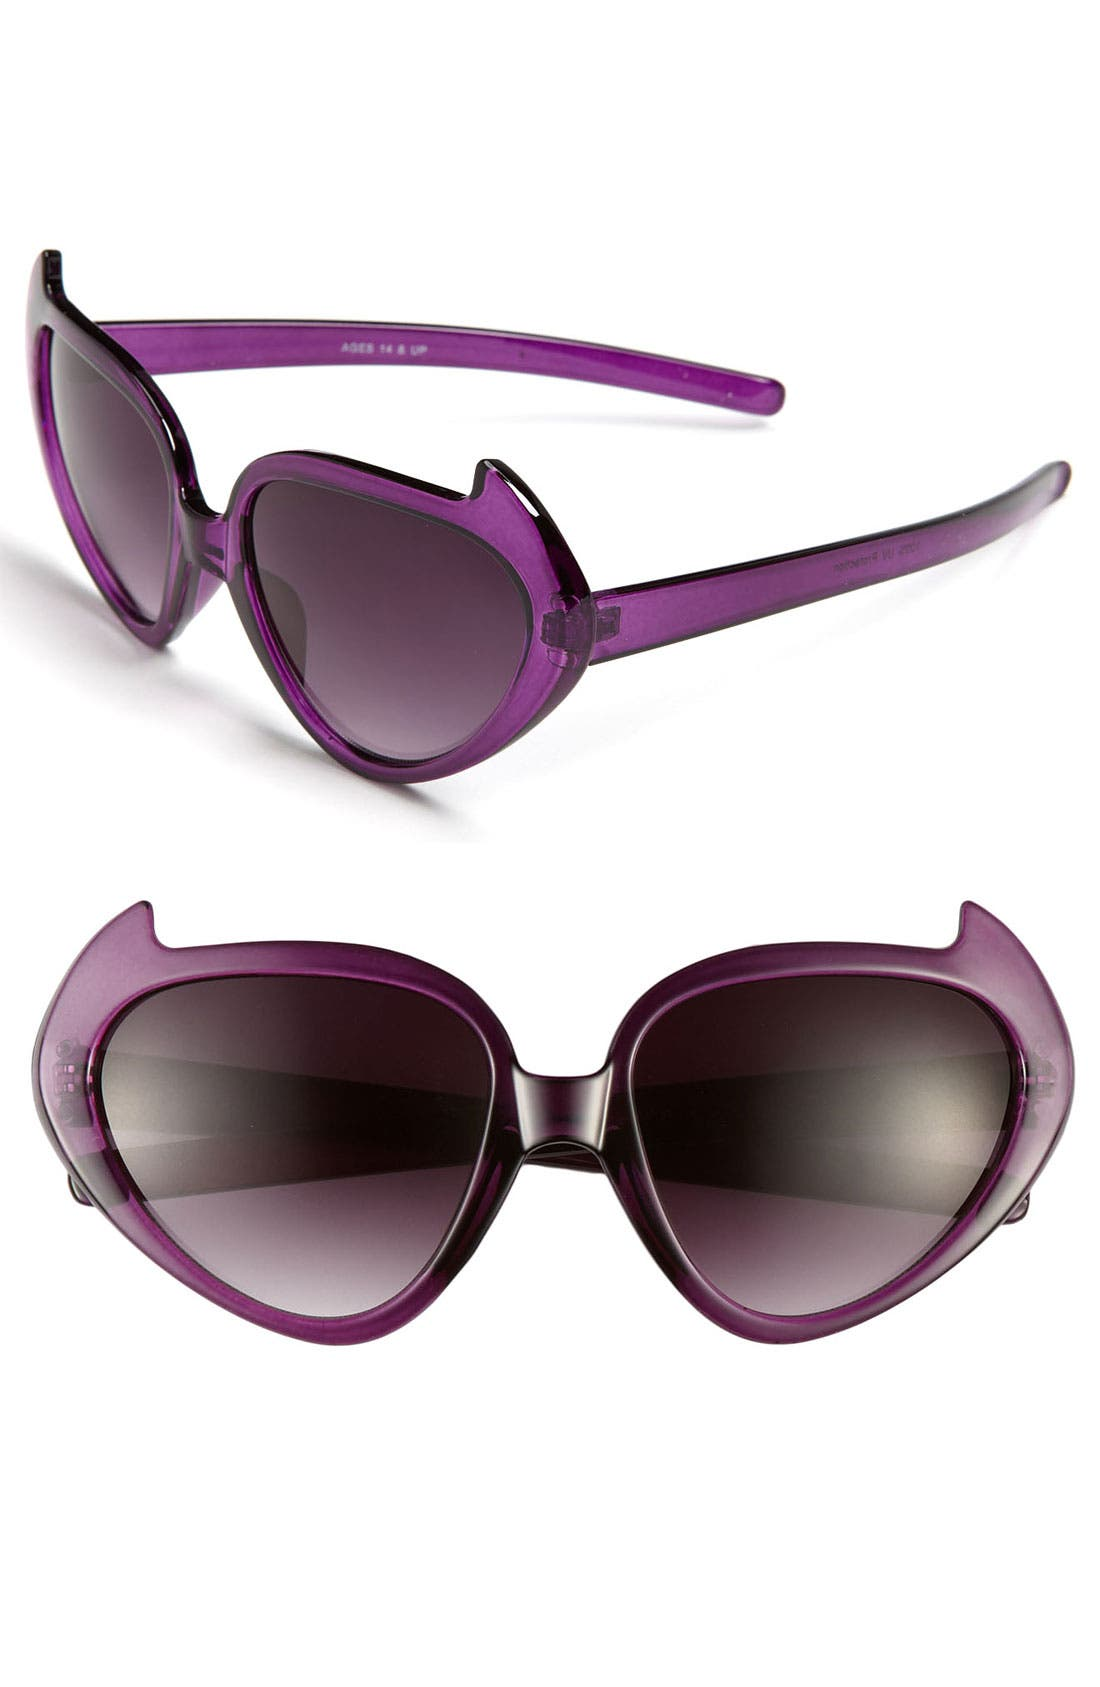 Main Image - FE NY 'Kitty' Cat's Eye Sunglasses